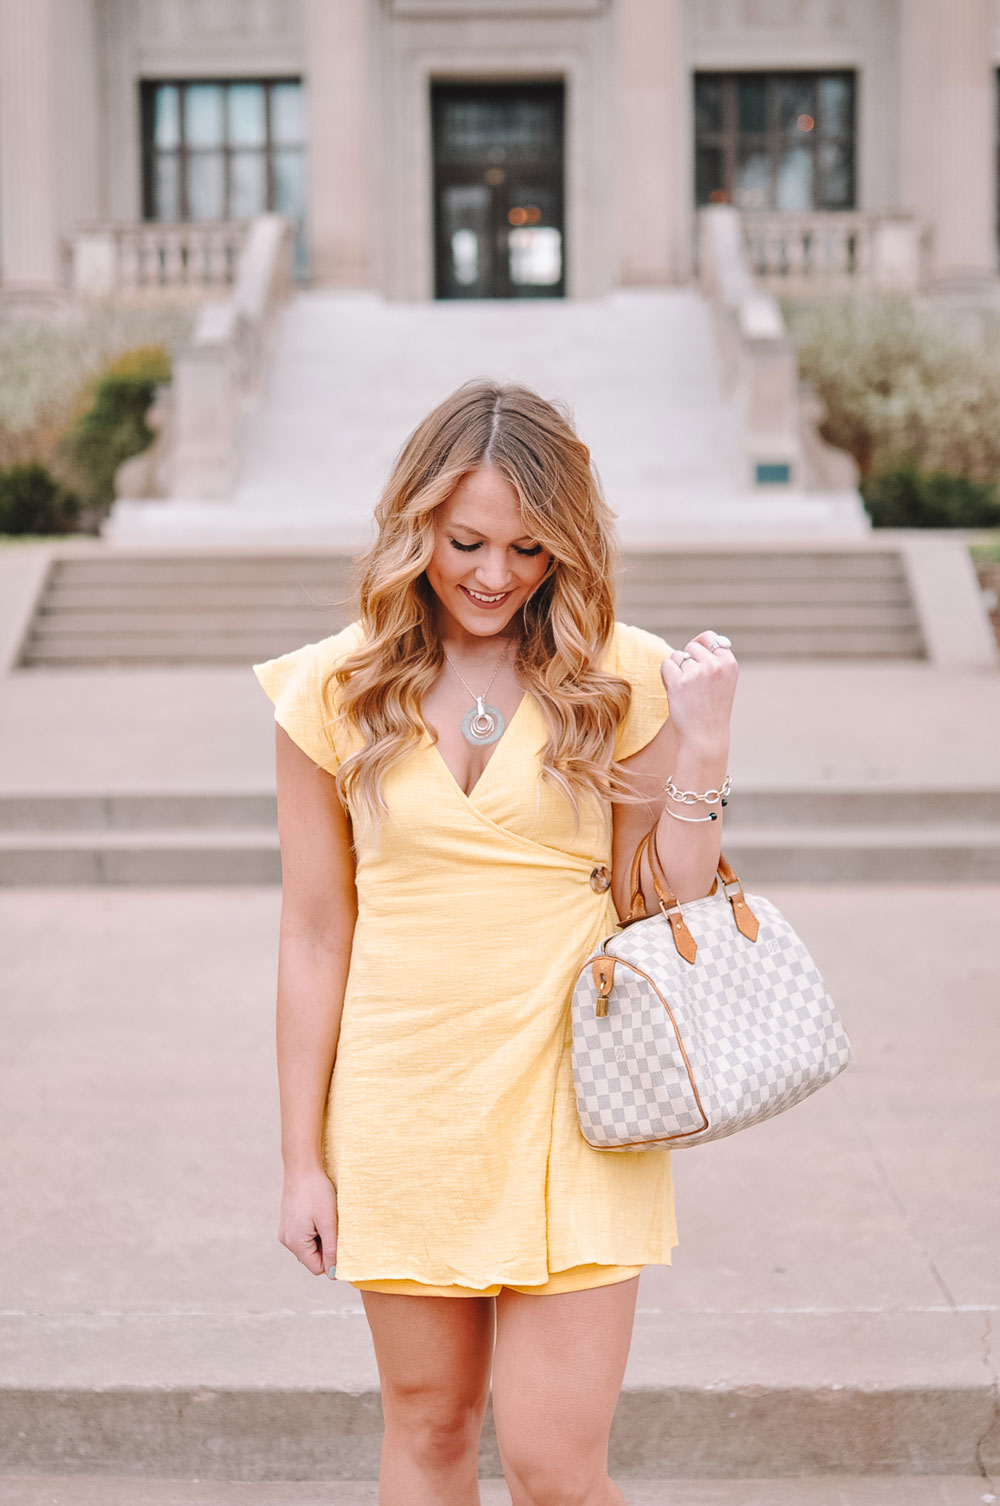 Oklahoma City blogger Amanda Martin shares ideas on what to wear for Easter